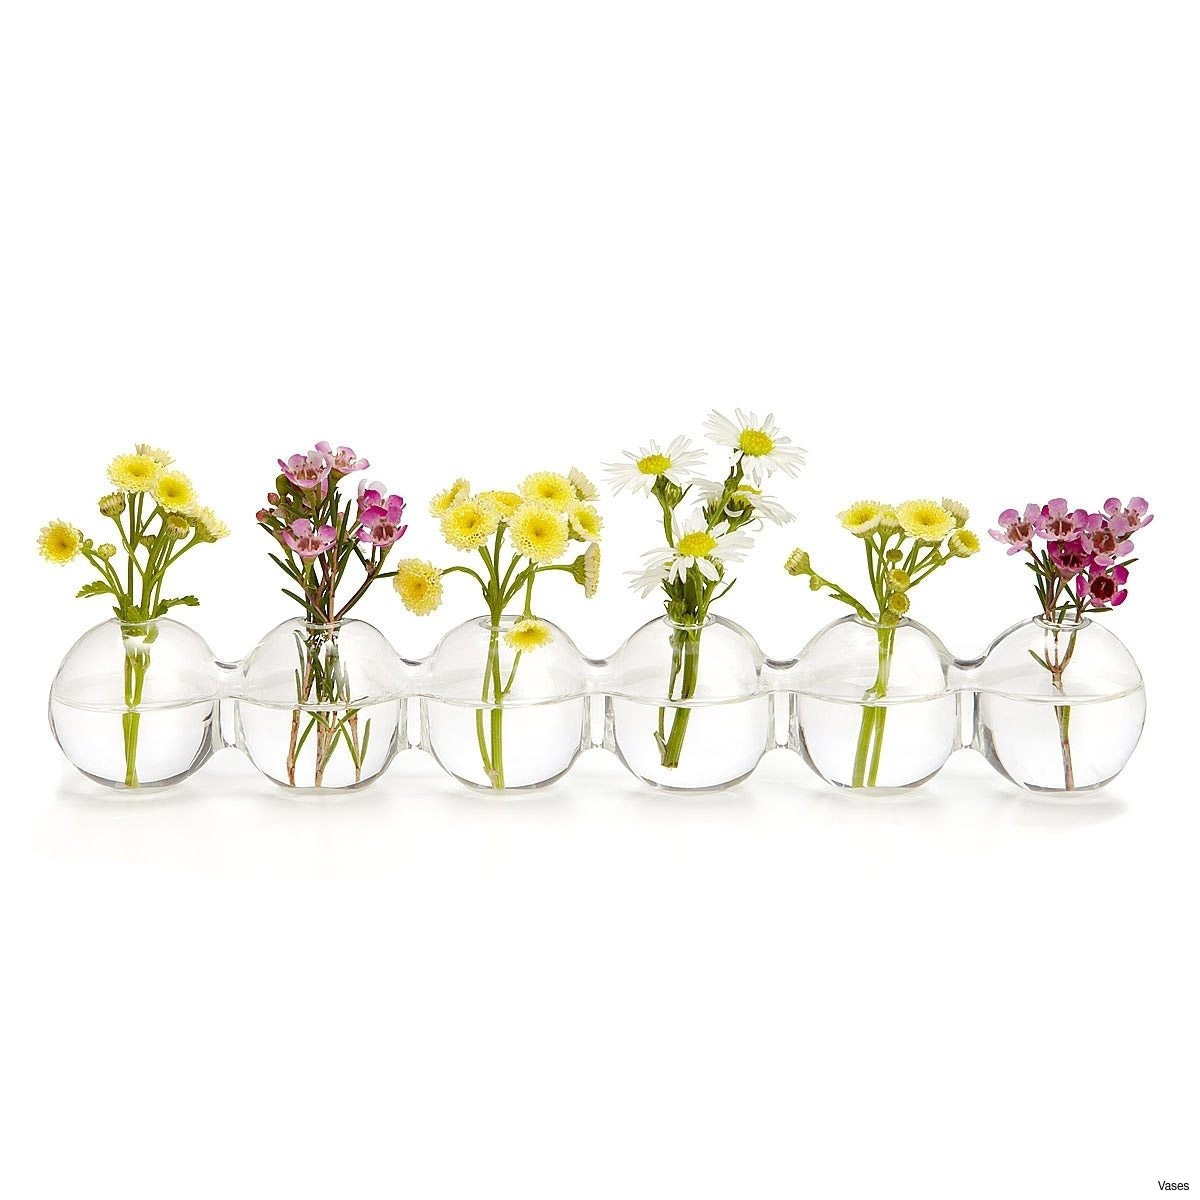 small glass bud vases wholesale of bulk bud vase gallery bud vase in 28case 29 glass 29h vases small intended for bud vase in 28case 29 glass 29h vases small bulk case i 0d scheme